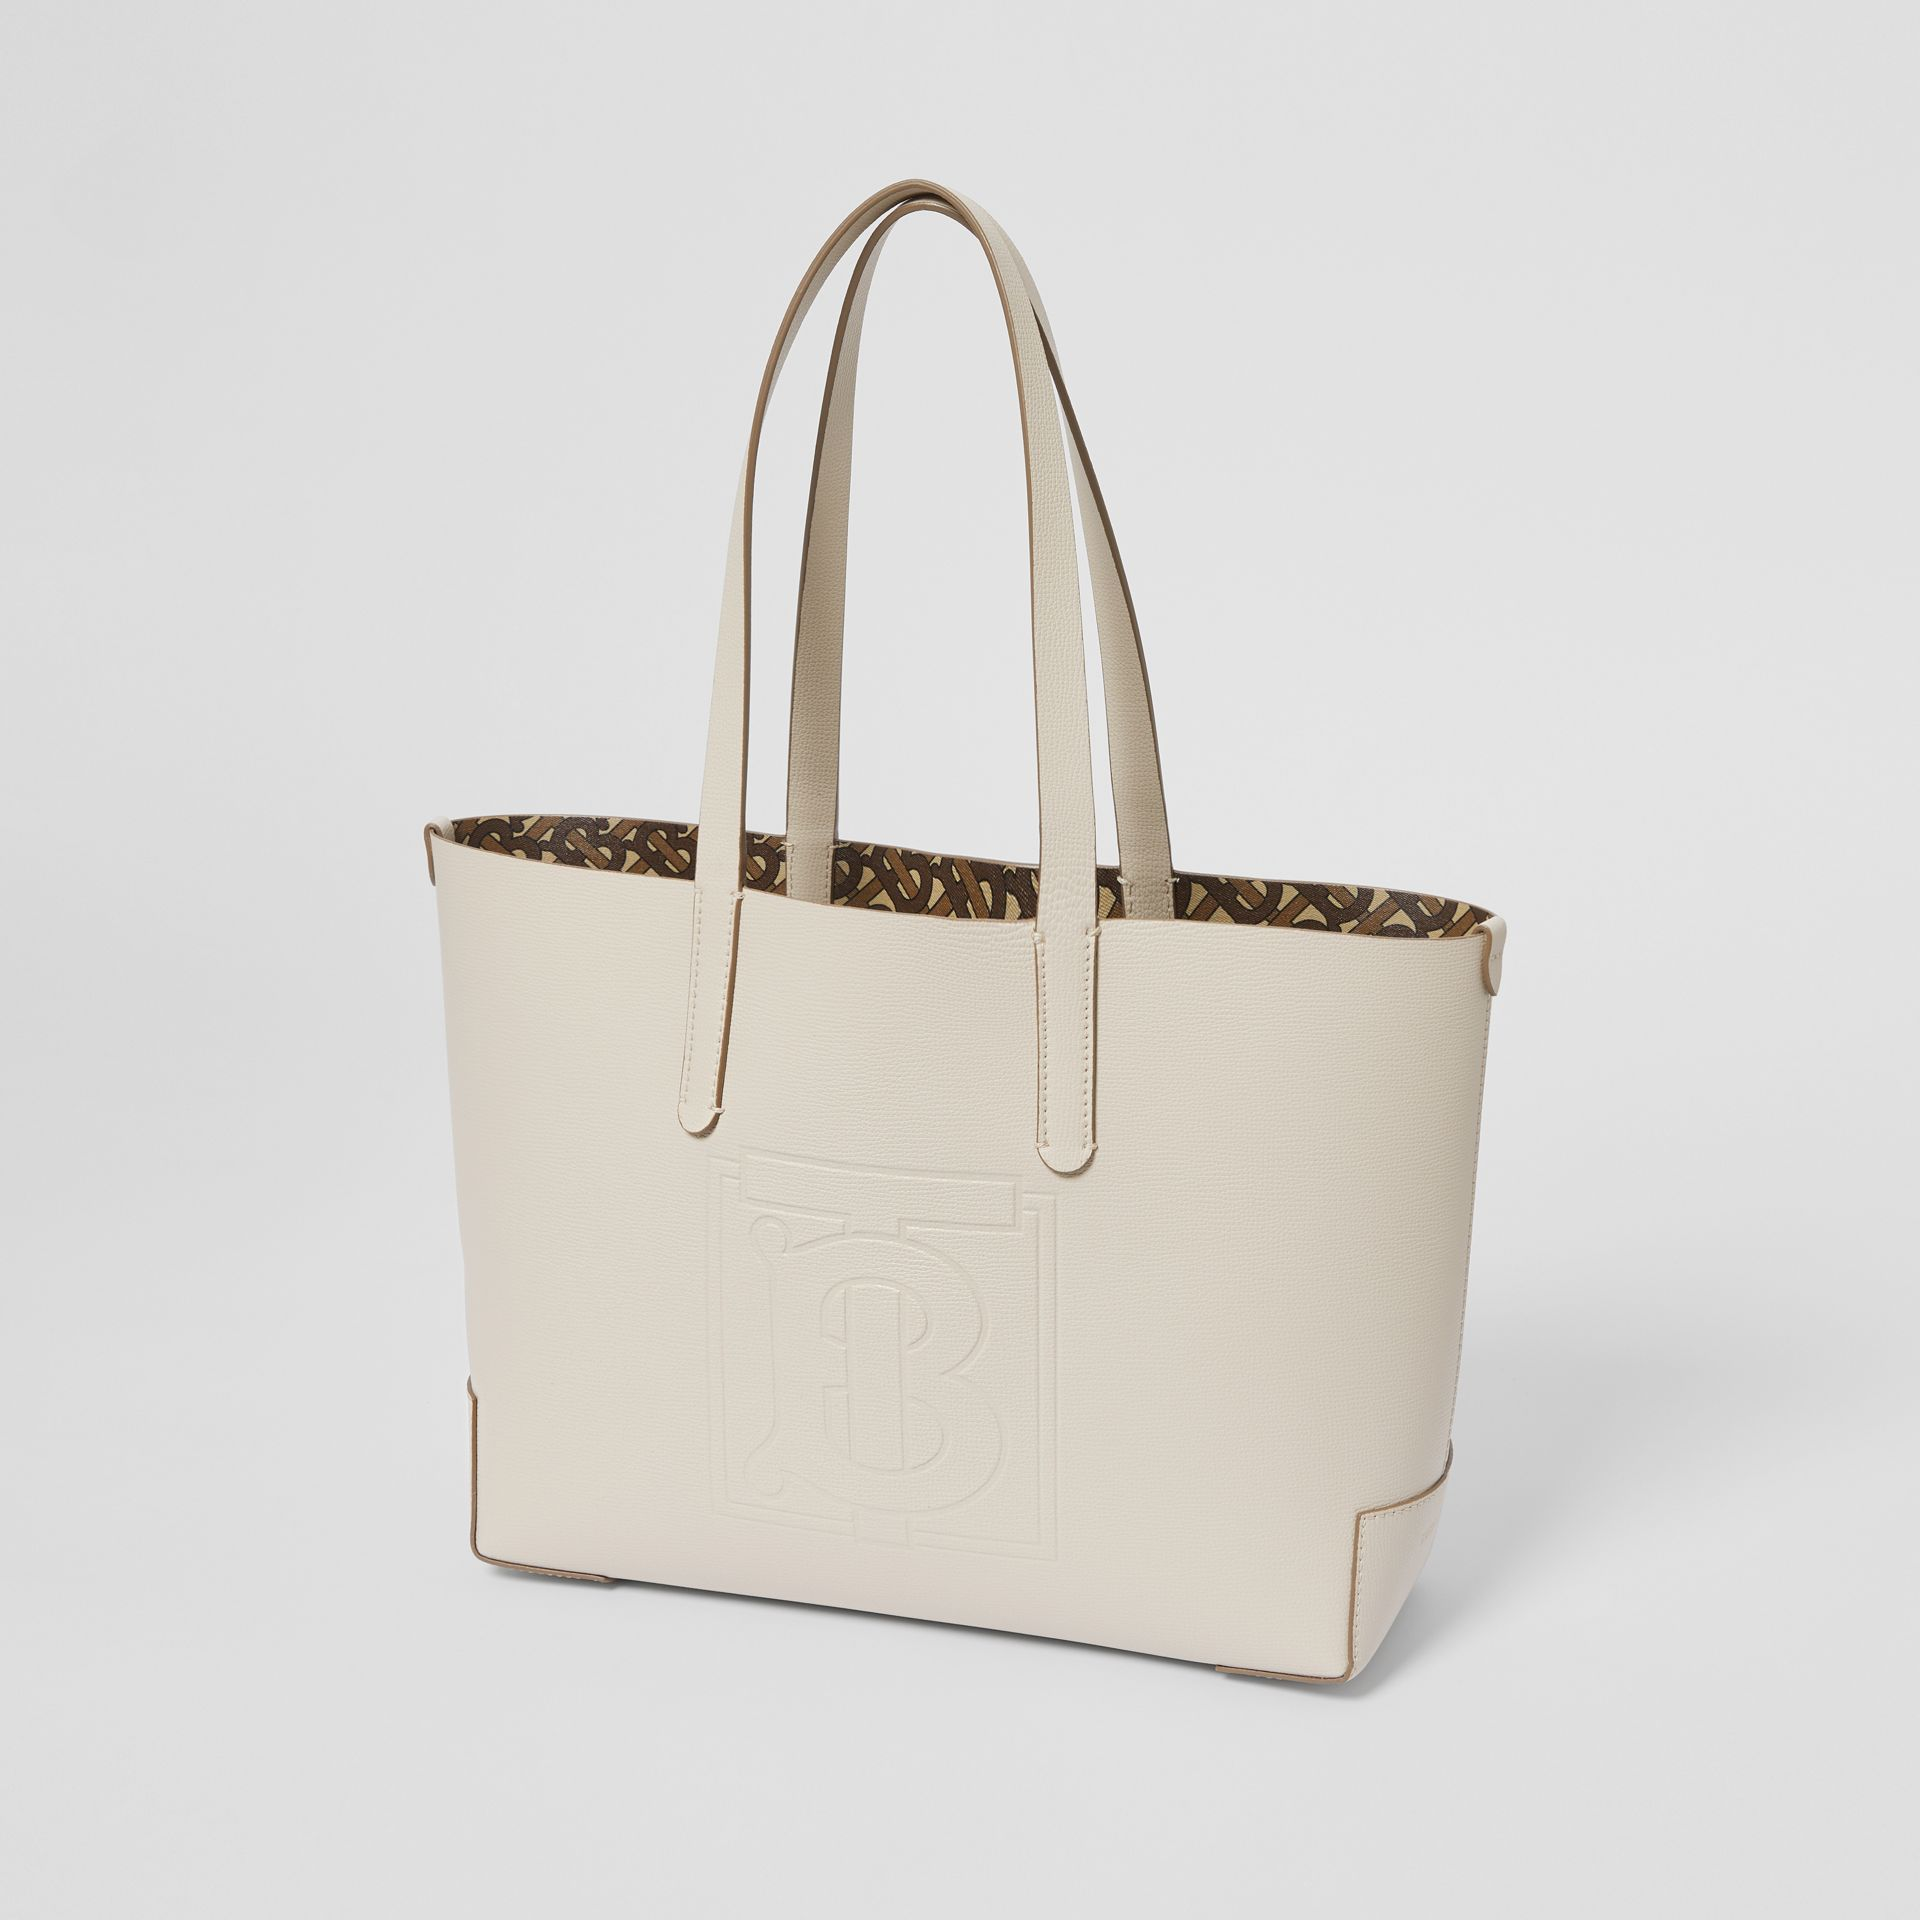 Embossed Monogram Motif Leather Tote in Limestone - Women | Burberry Australia - gallery image 3